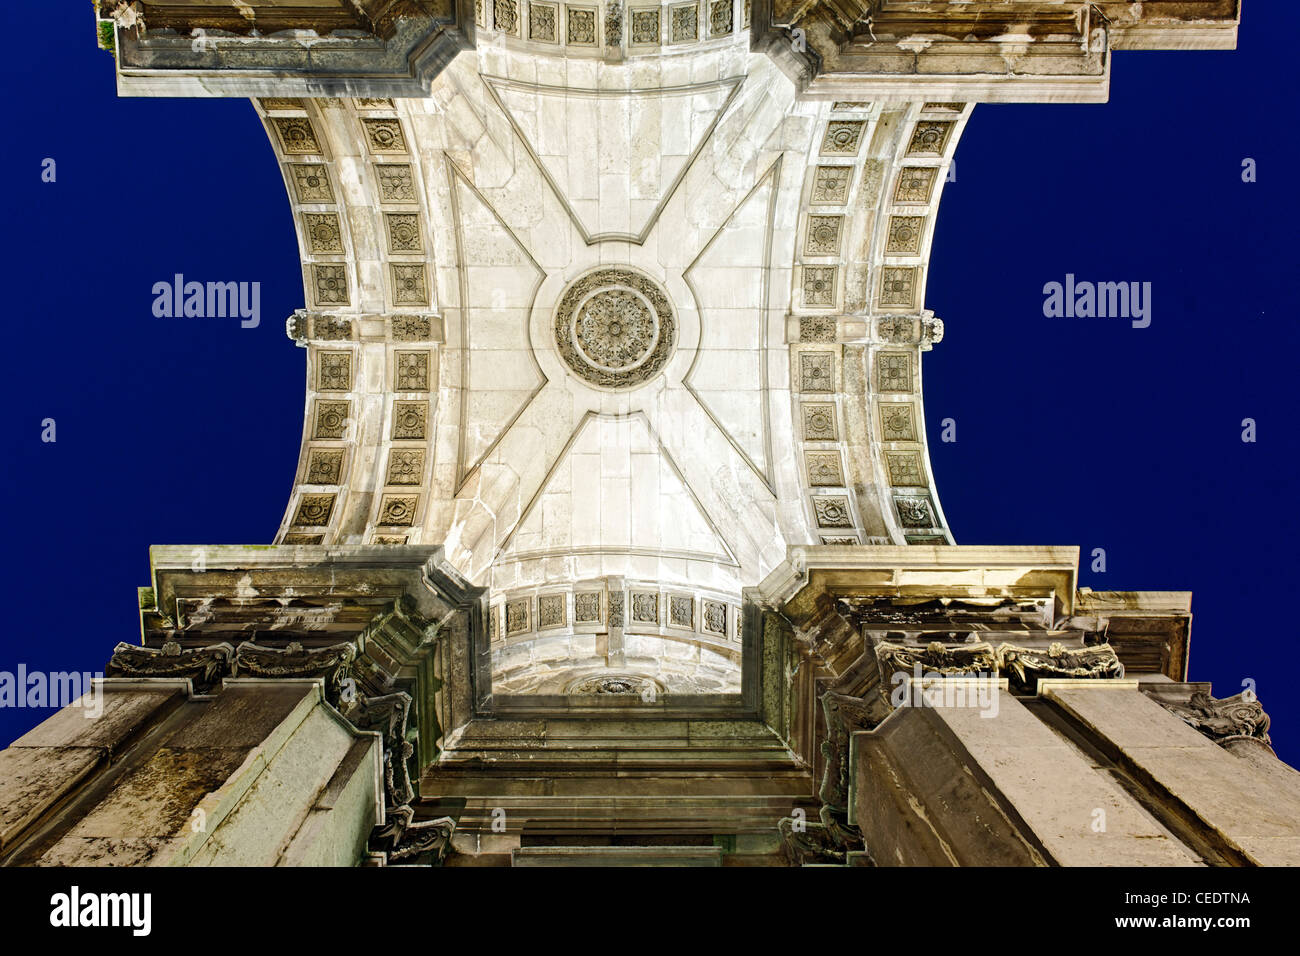 triumphal Arch of Augusta Street, worm's-eye view, trading place, quarter of Baixa, Lisbon, Portugal - Stock Image